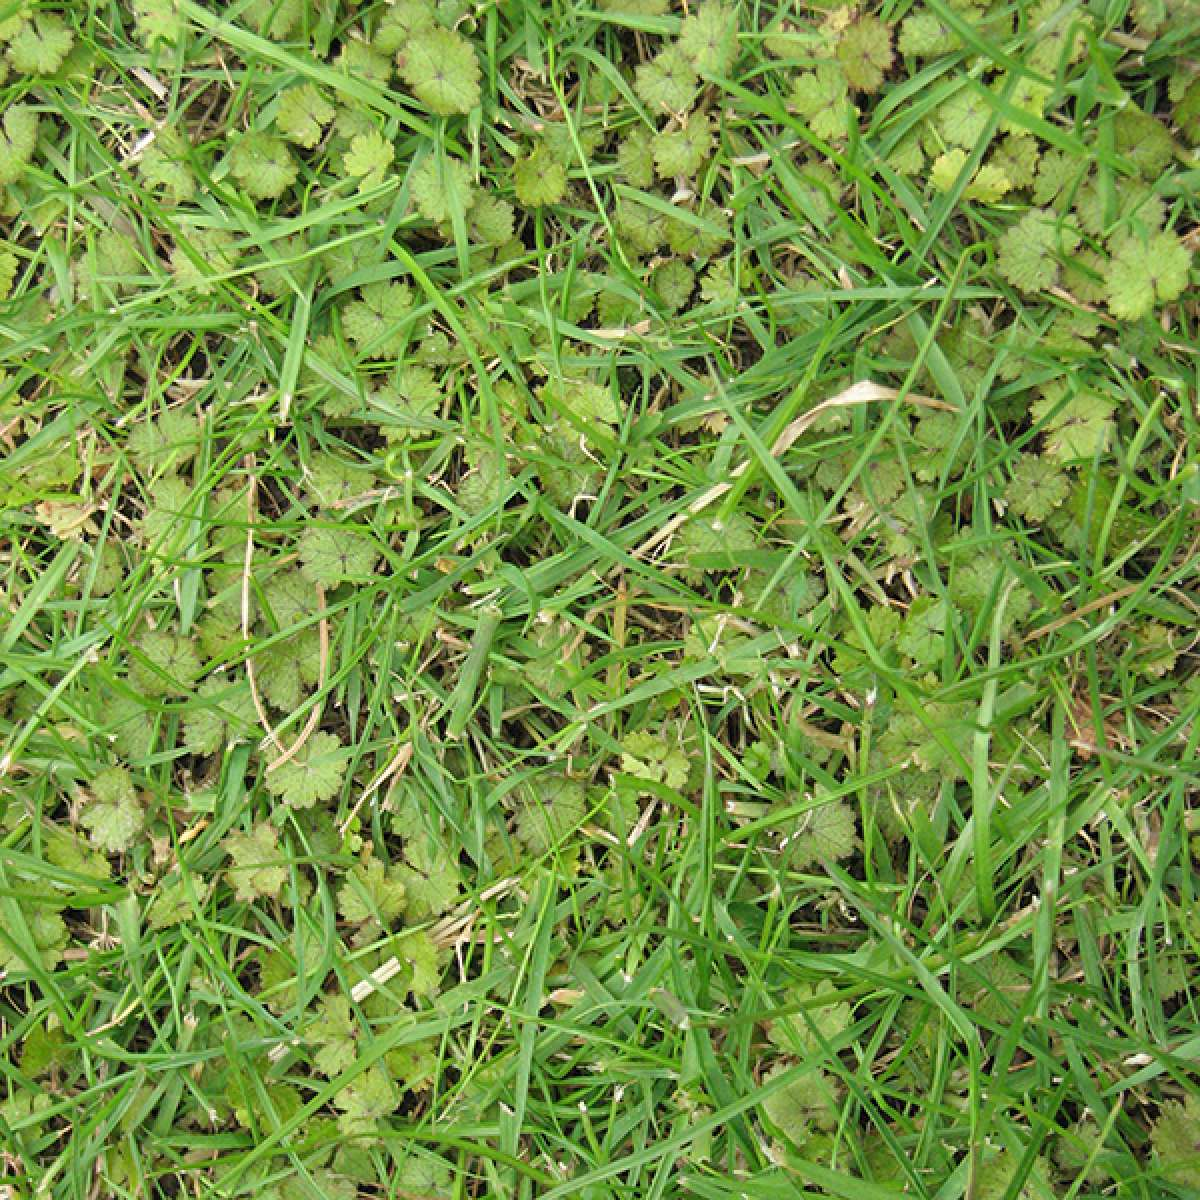 Hydrocotyle Control Of Hydrocotyle Weed In Lawns